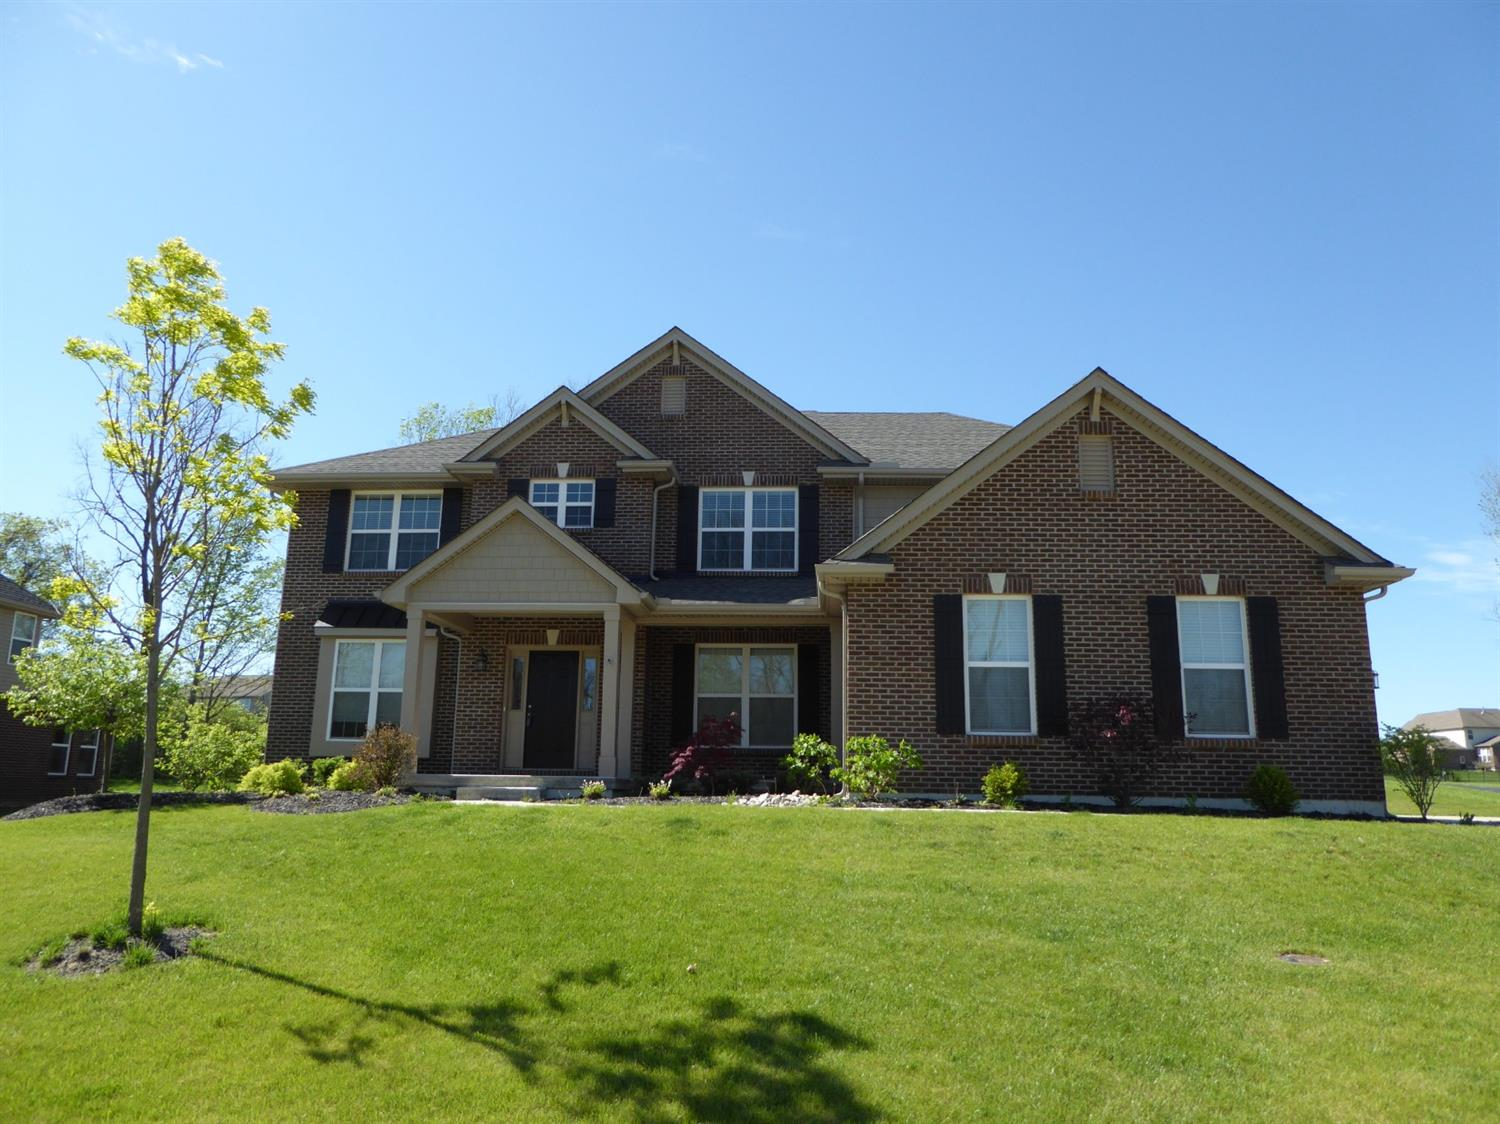 Property for sale at 5333 Woodview Way, Liberty Twp,  OH 45011